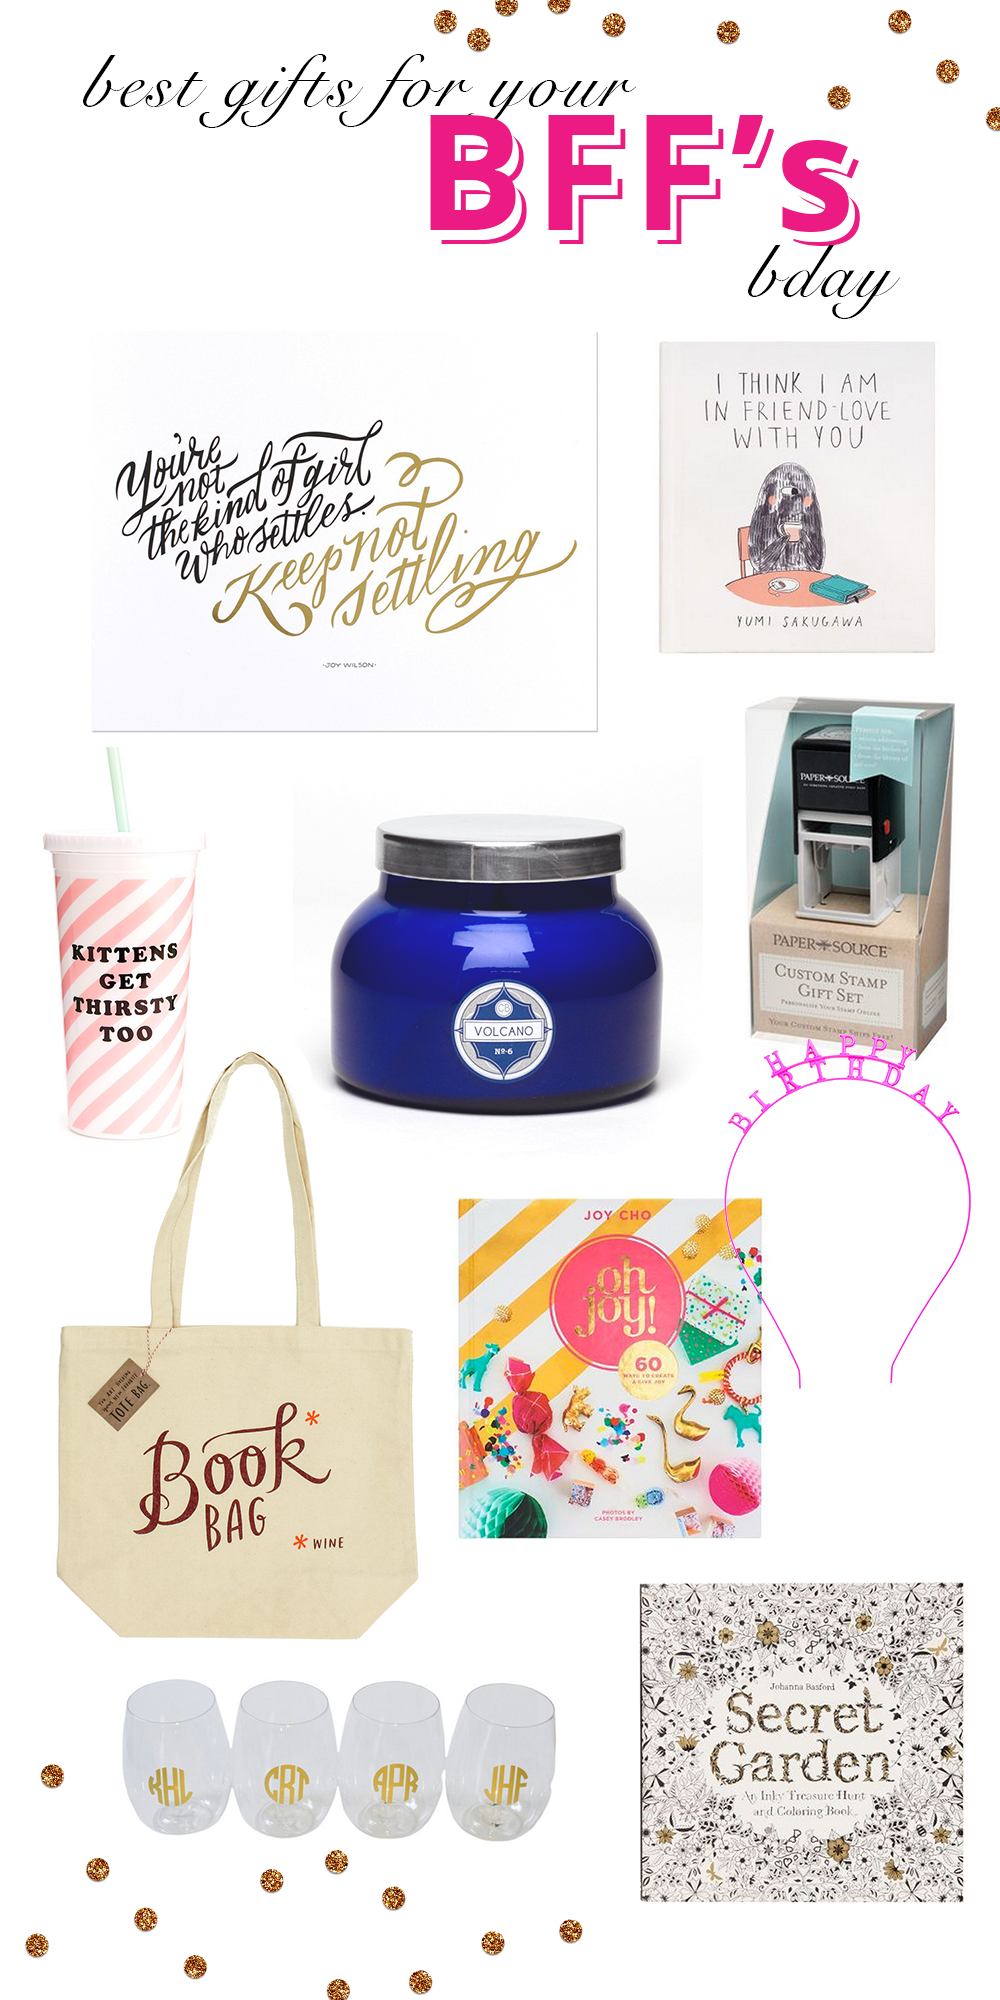 best gifts for your best friend's birthday